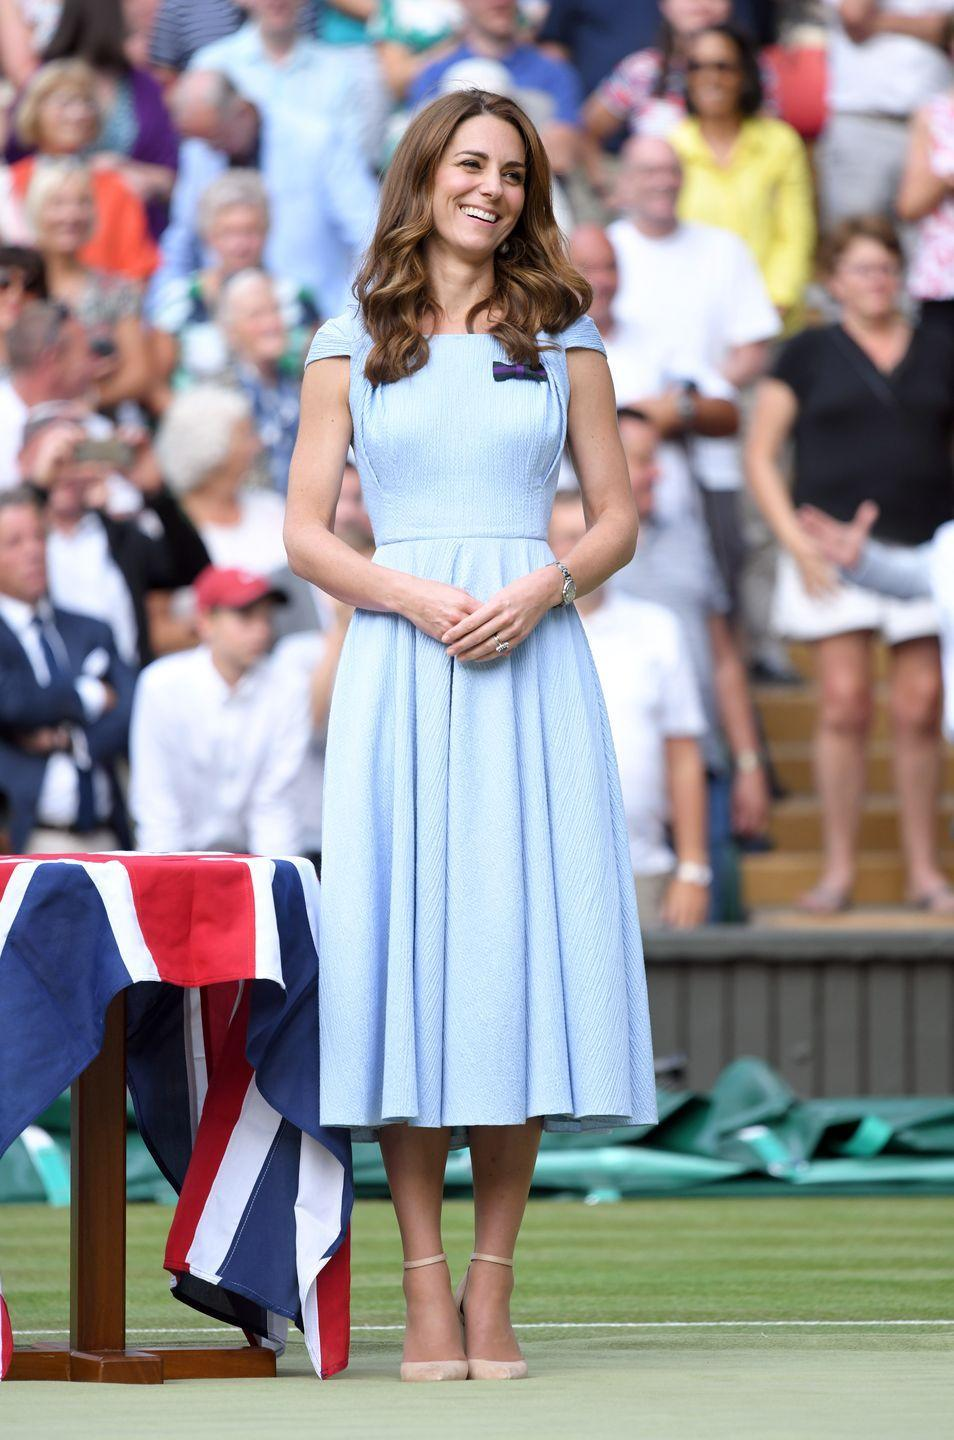 <p>Duchess of Cambridge attends day 13 of the Wimbledon Tennis Championships in a dress by Emilia Wickstead.</p>